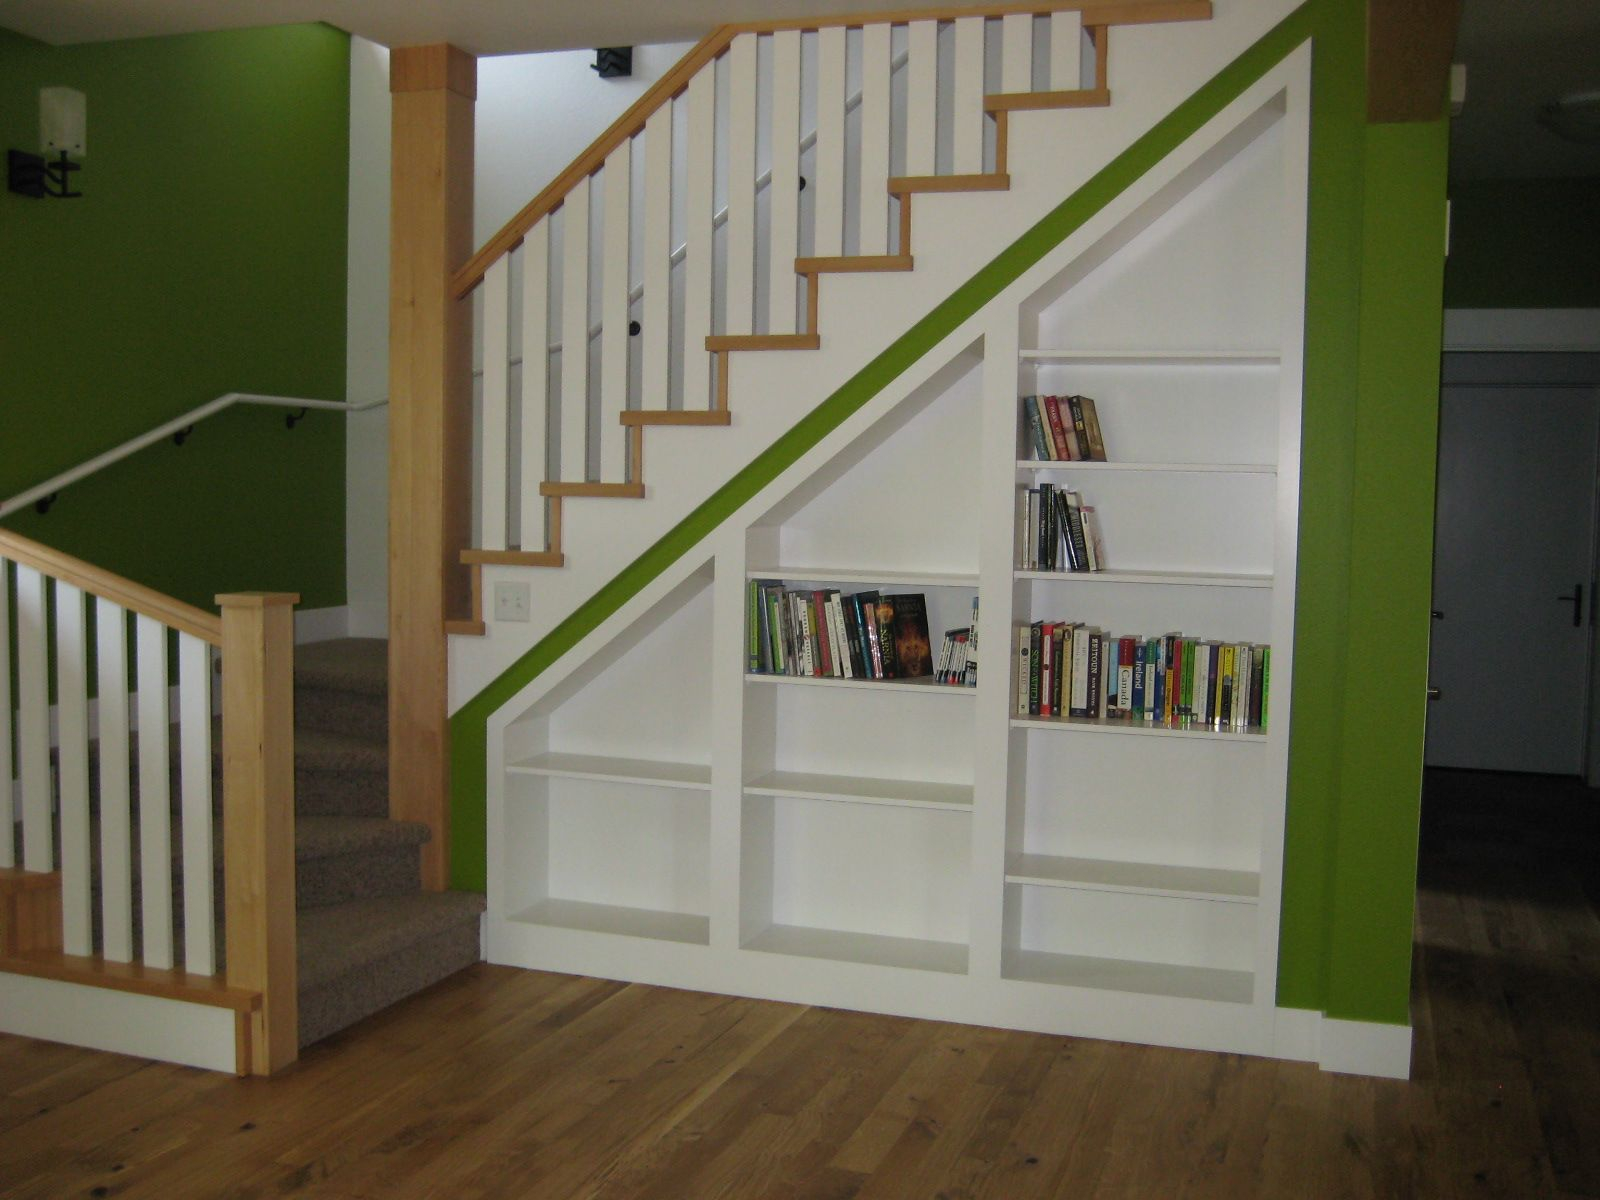 Mural Of Built In Cabinet Ideas Stairs In Living Room within sizing 1600 X 1200